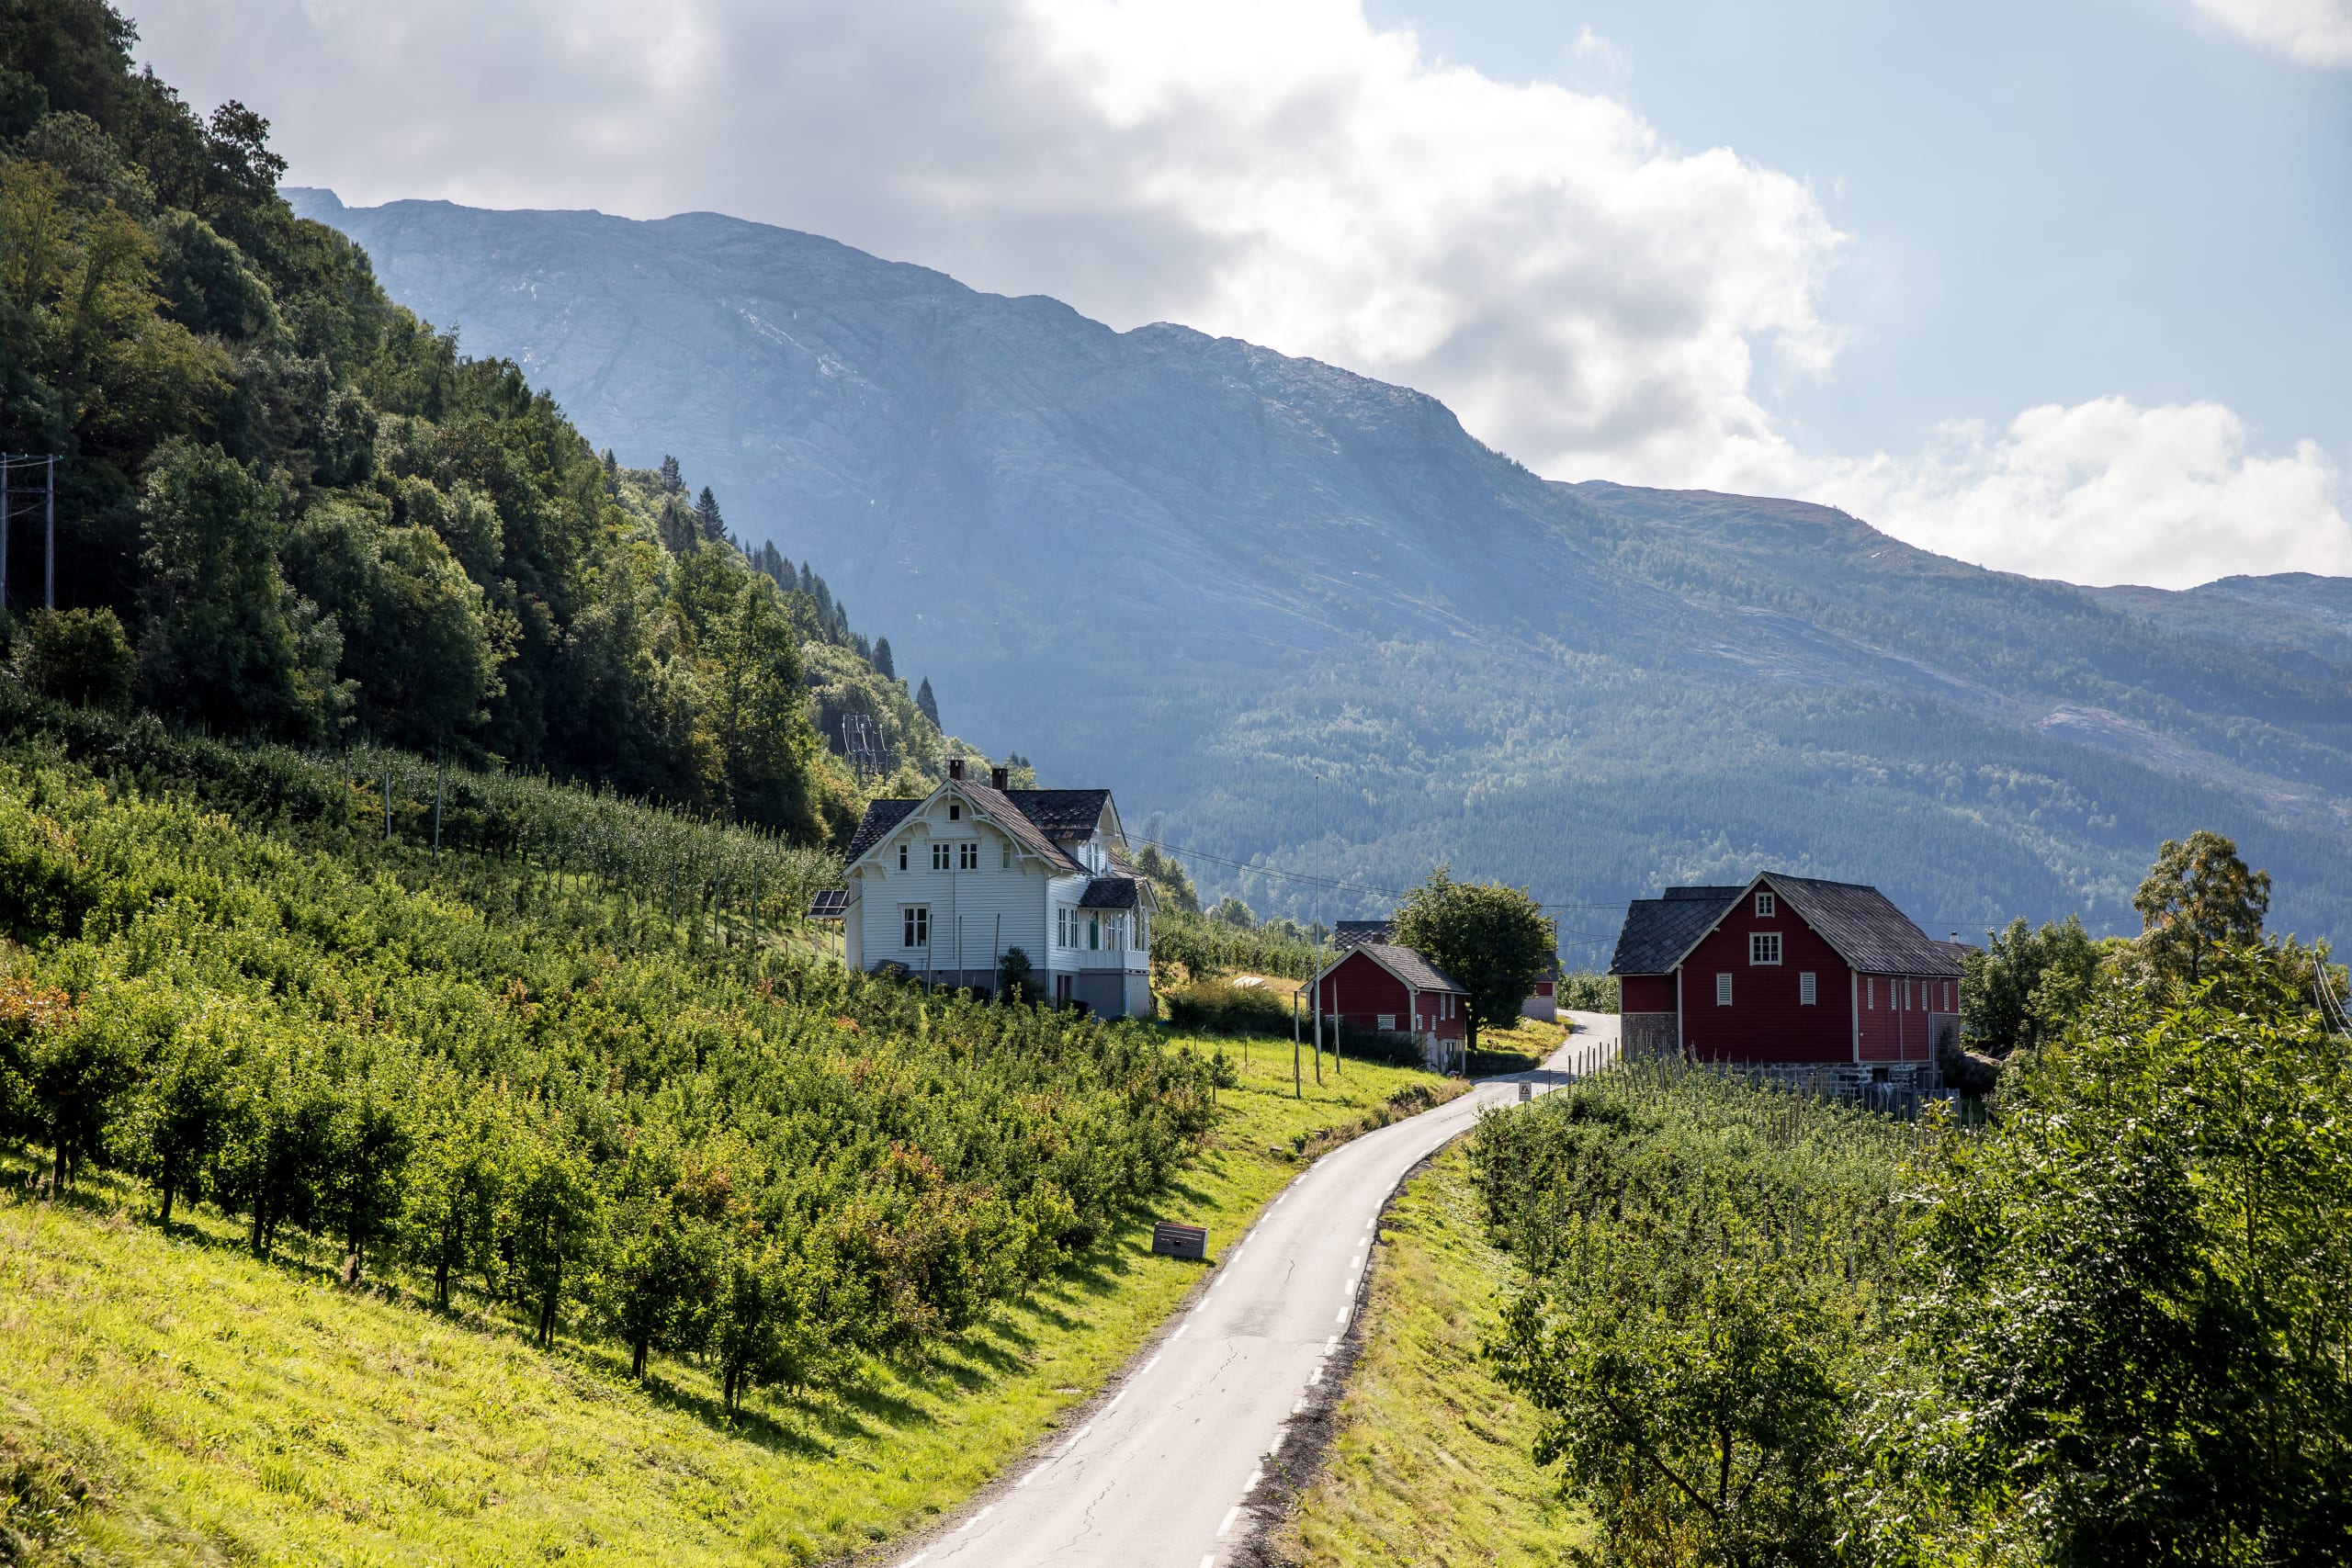 Hardanger apple farm